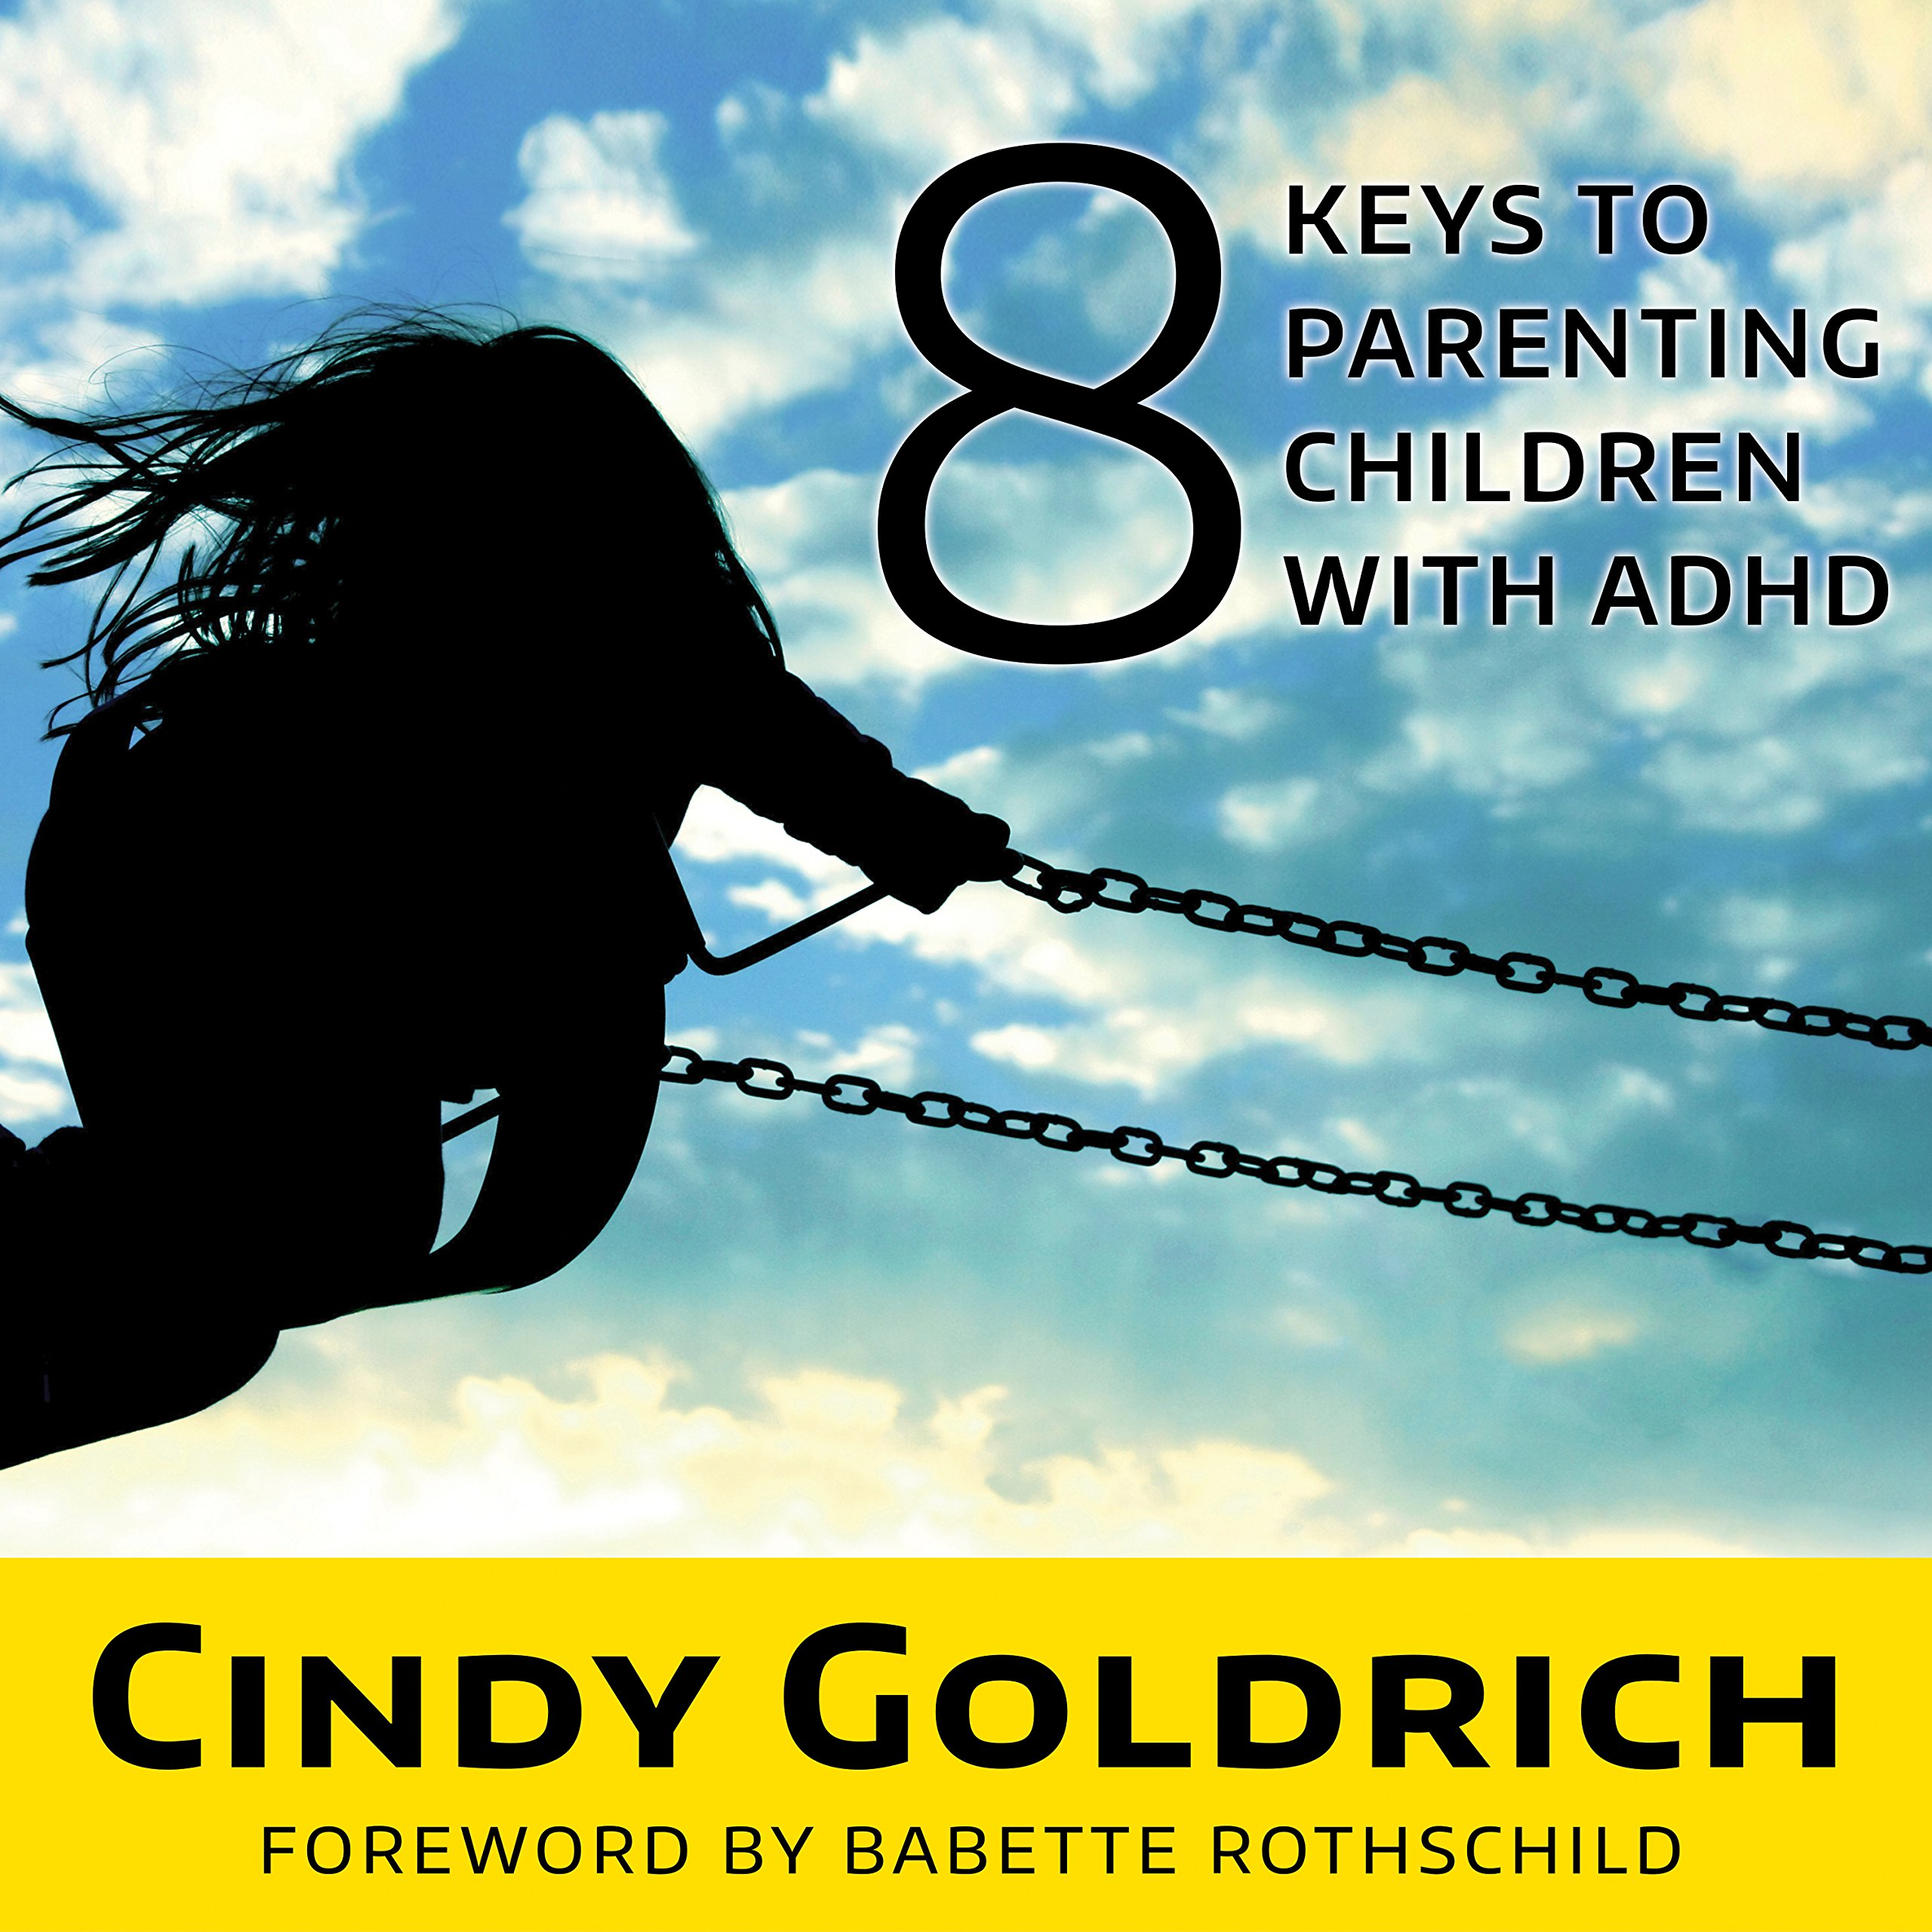 8 Keys to Parenting Children With ADHD